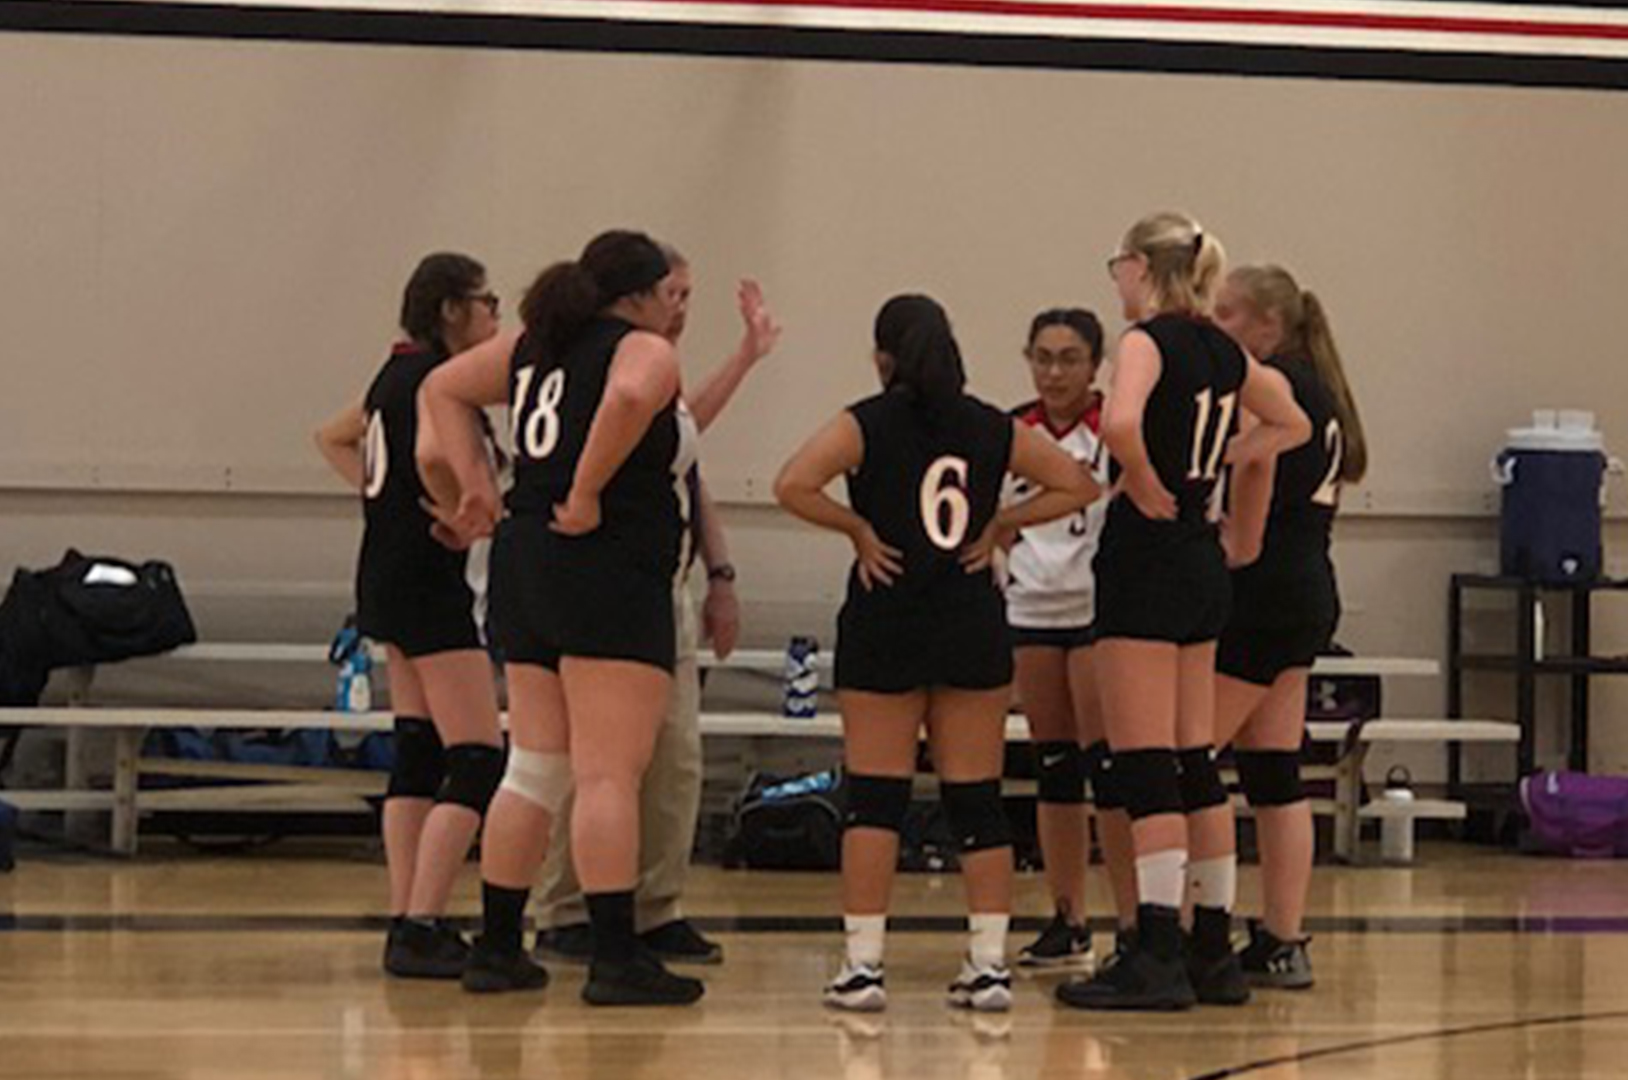 Girls volleyball team in a huddle during a game